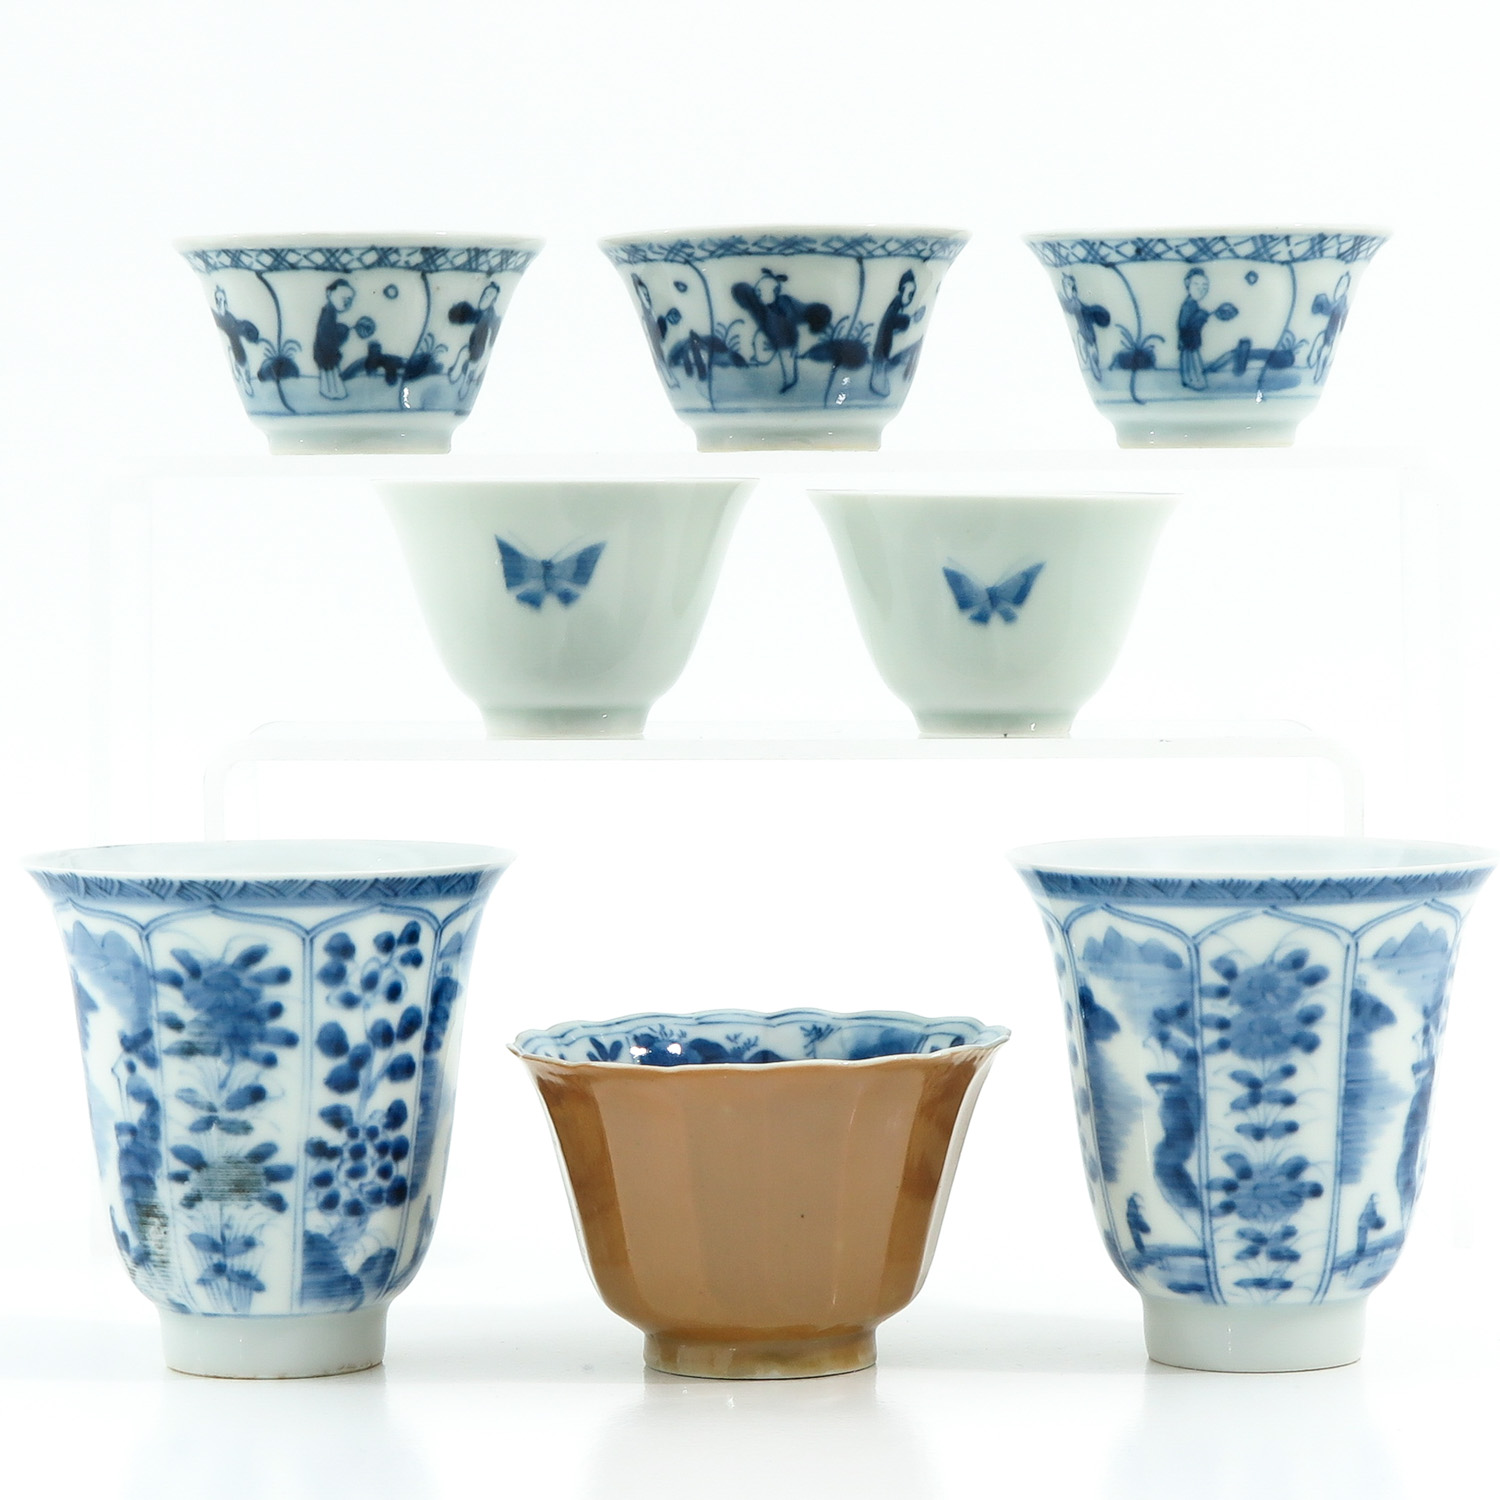 A Diverse Collection of Cups and Saucers - Image 3 of 10